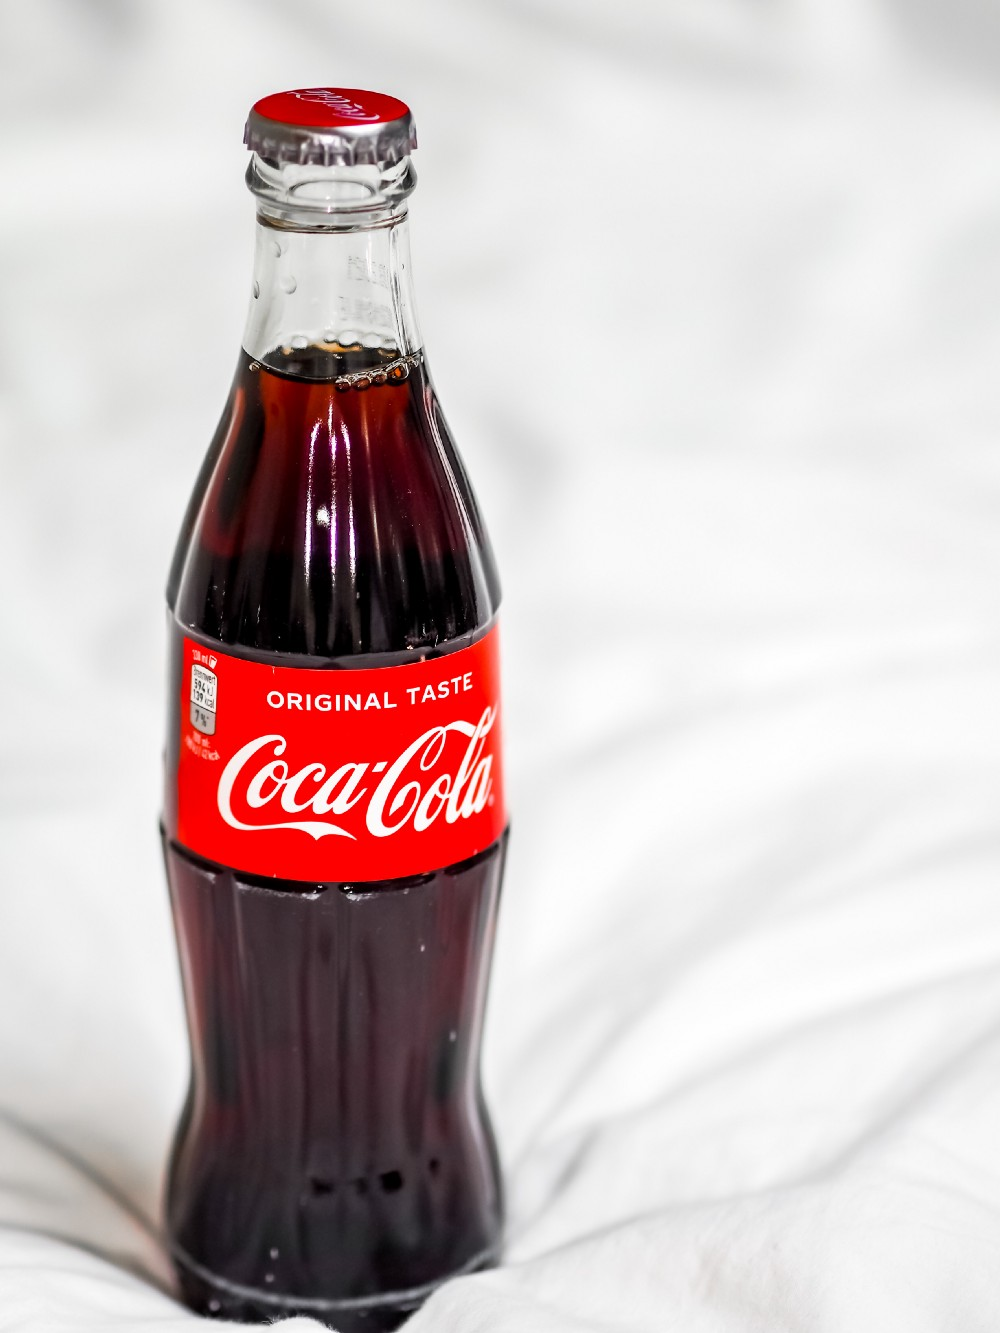 the iconic coca-cola glass bottle on a mattress, close-up.